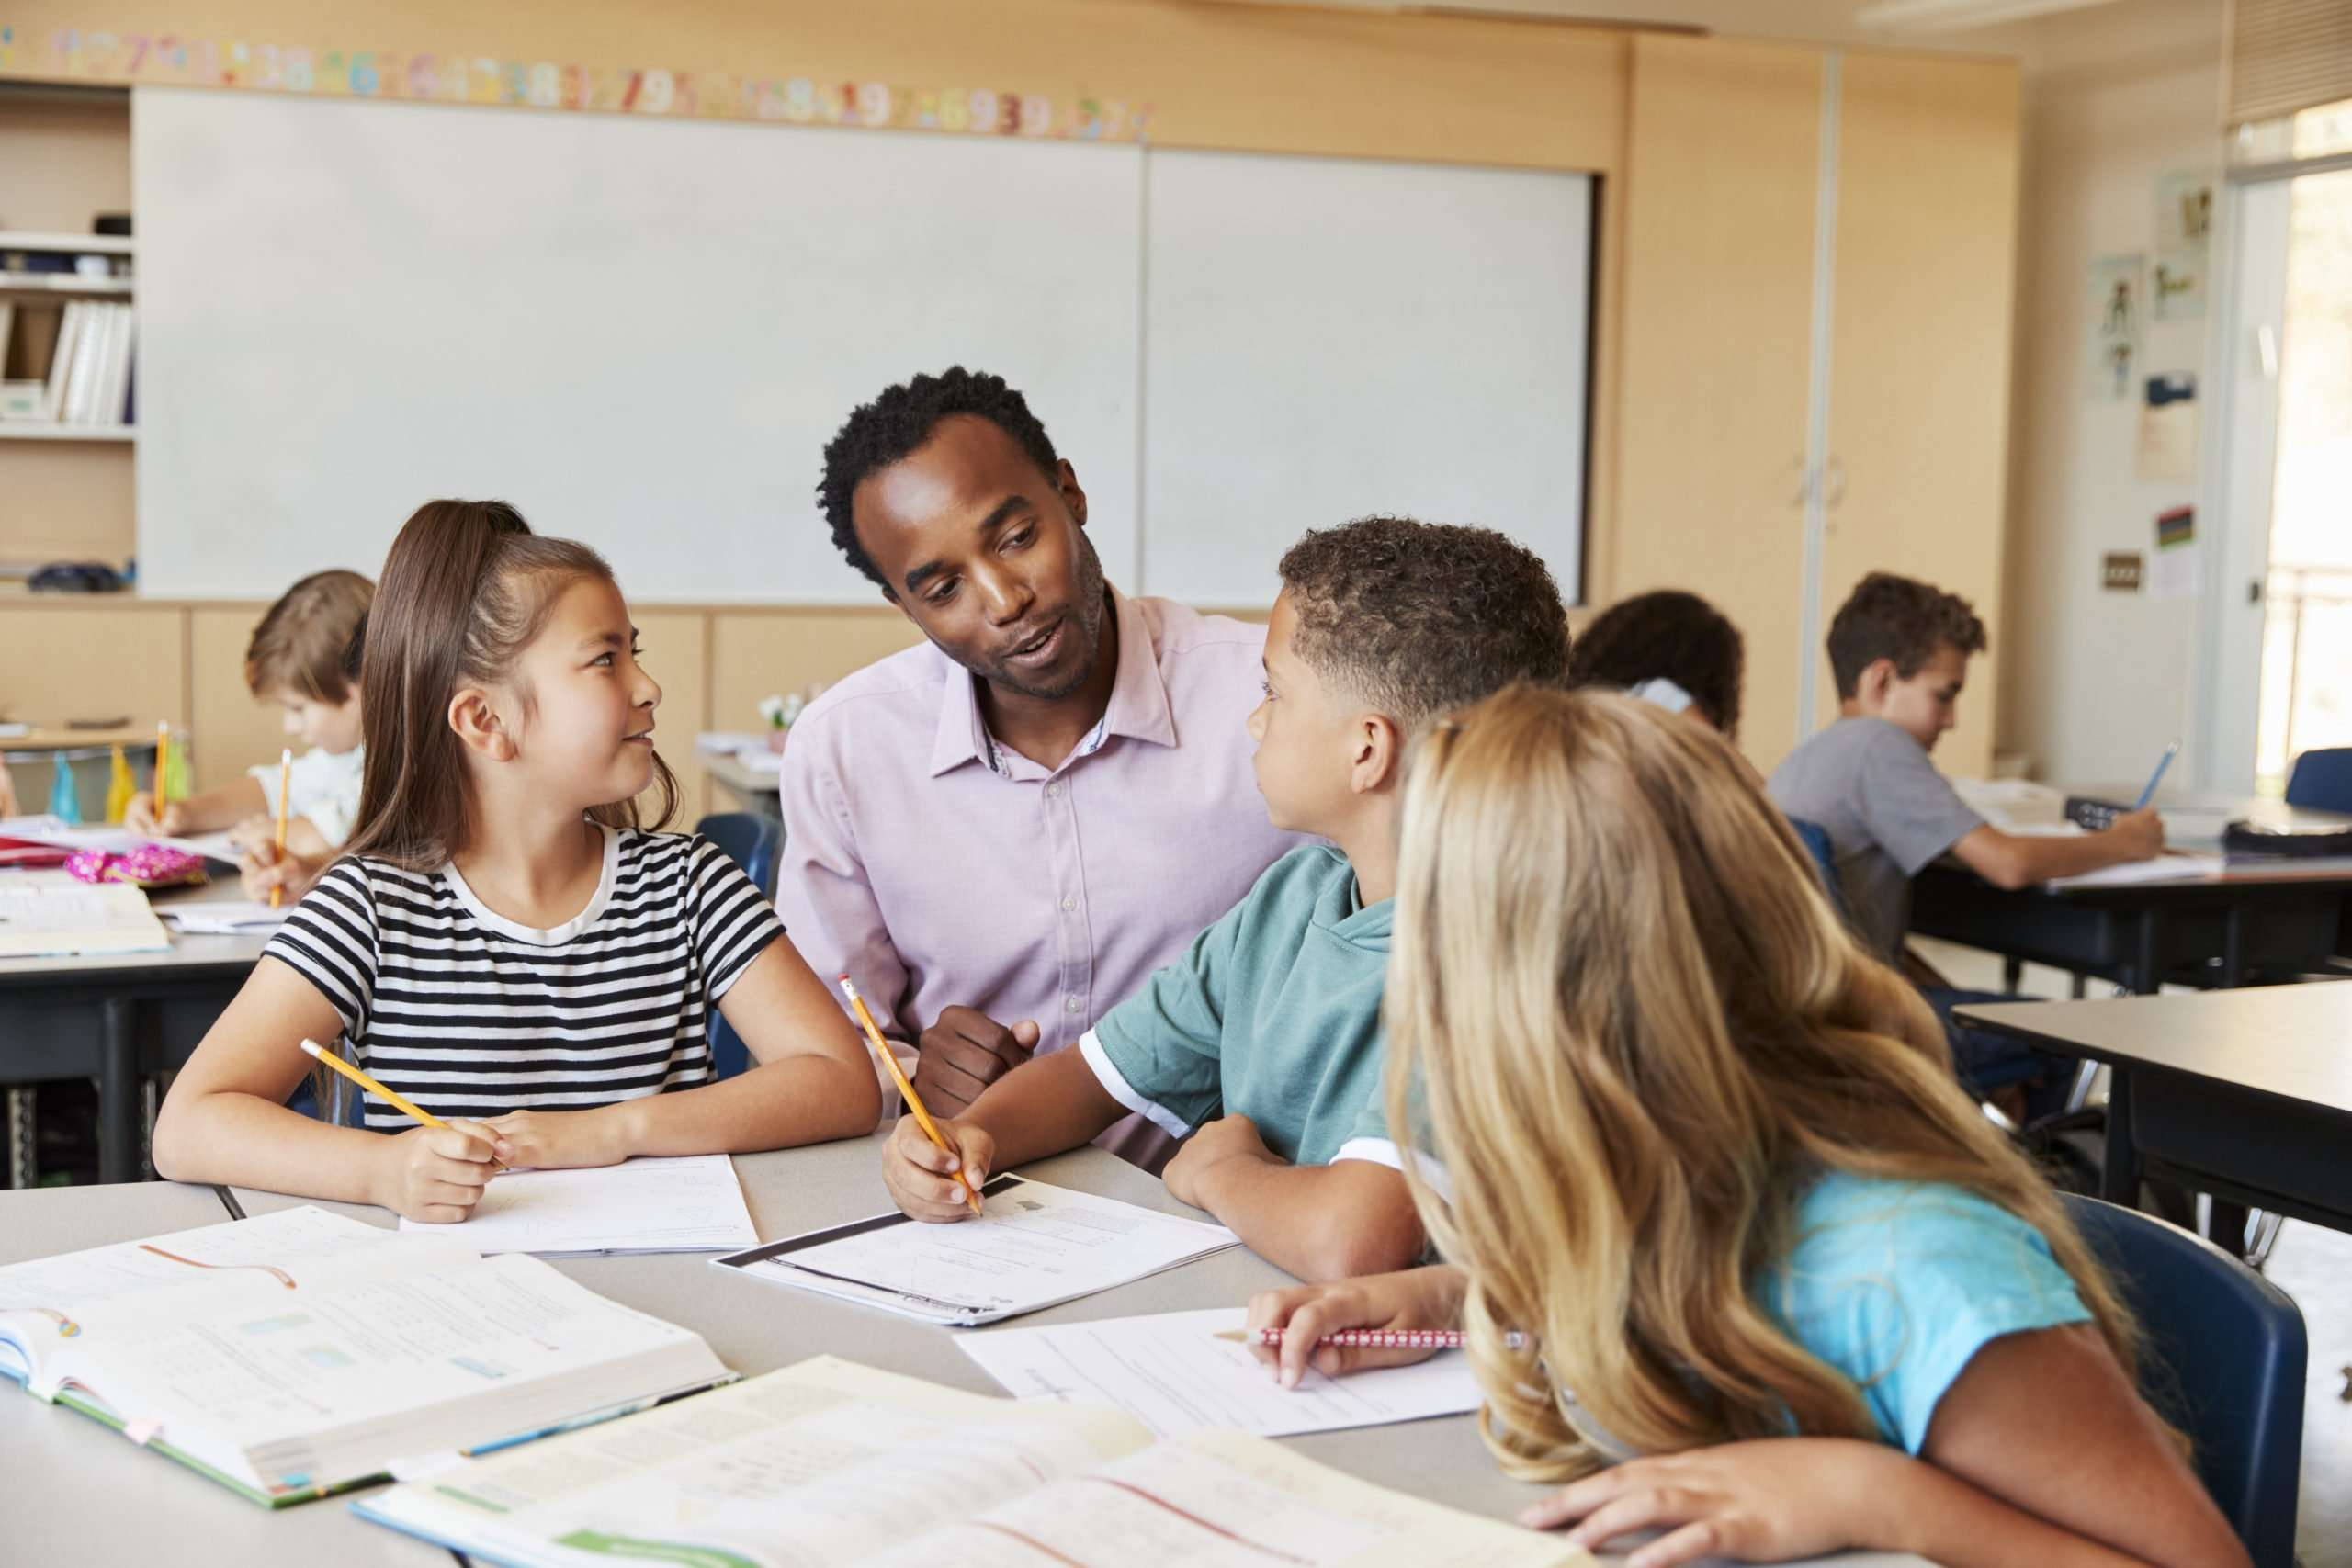 Teaching and Demonstrating Values in the Classroom